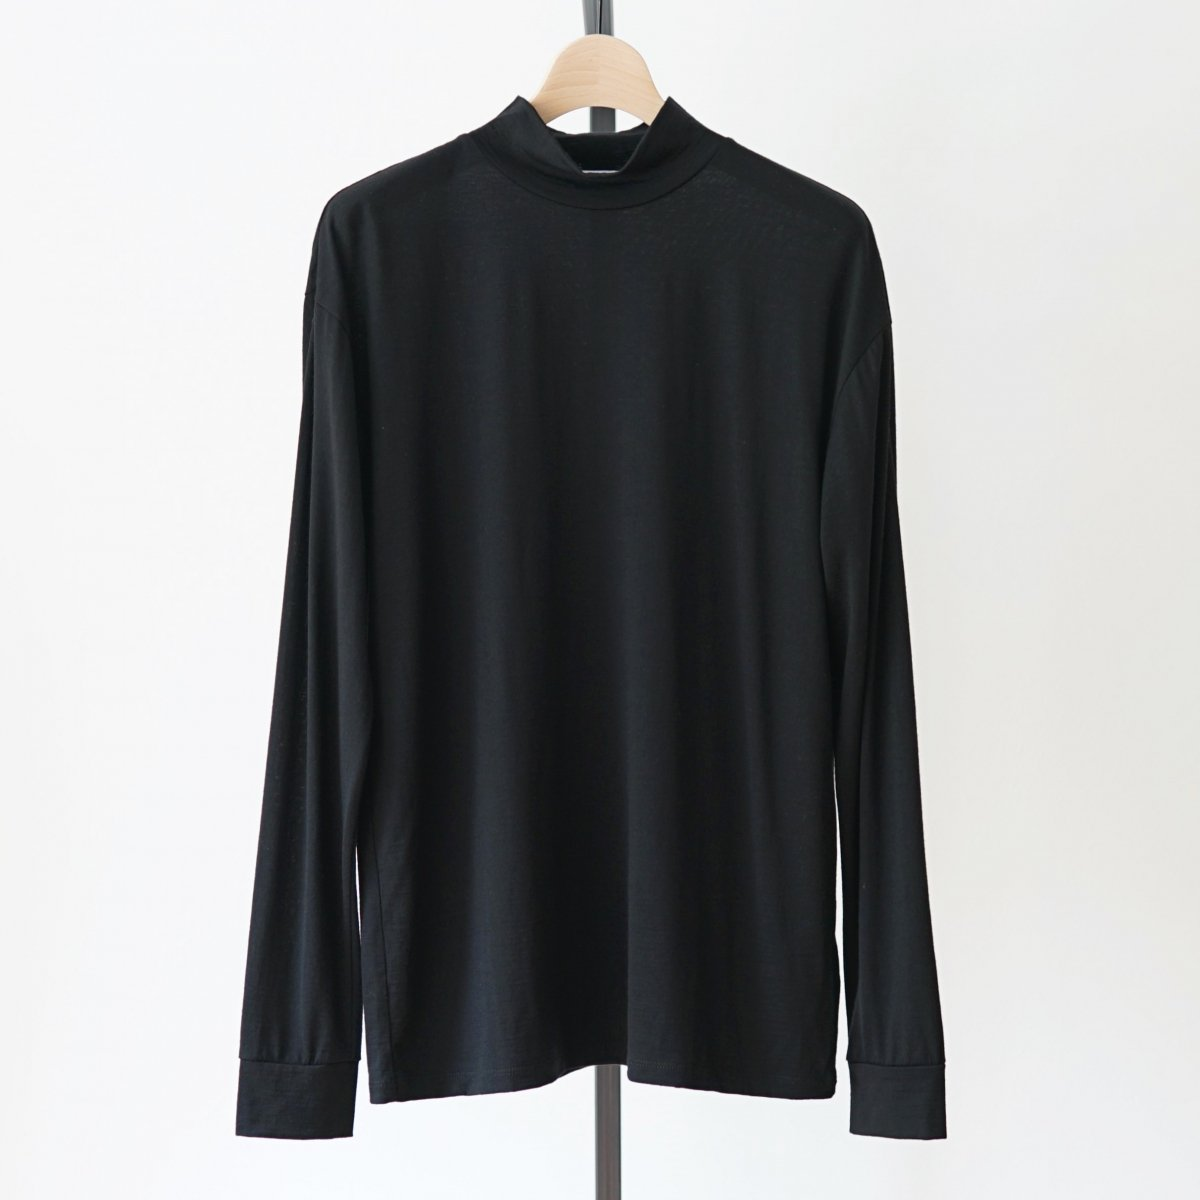 【UNDECORATED アンデコレイテッド】SUPER120 WOOL L/S T-SHIRTS - BLACK